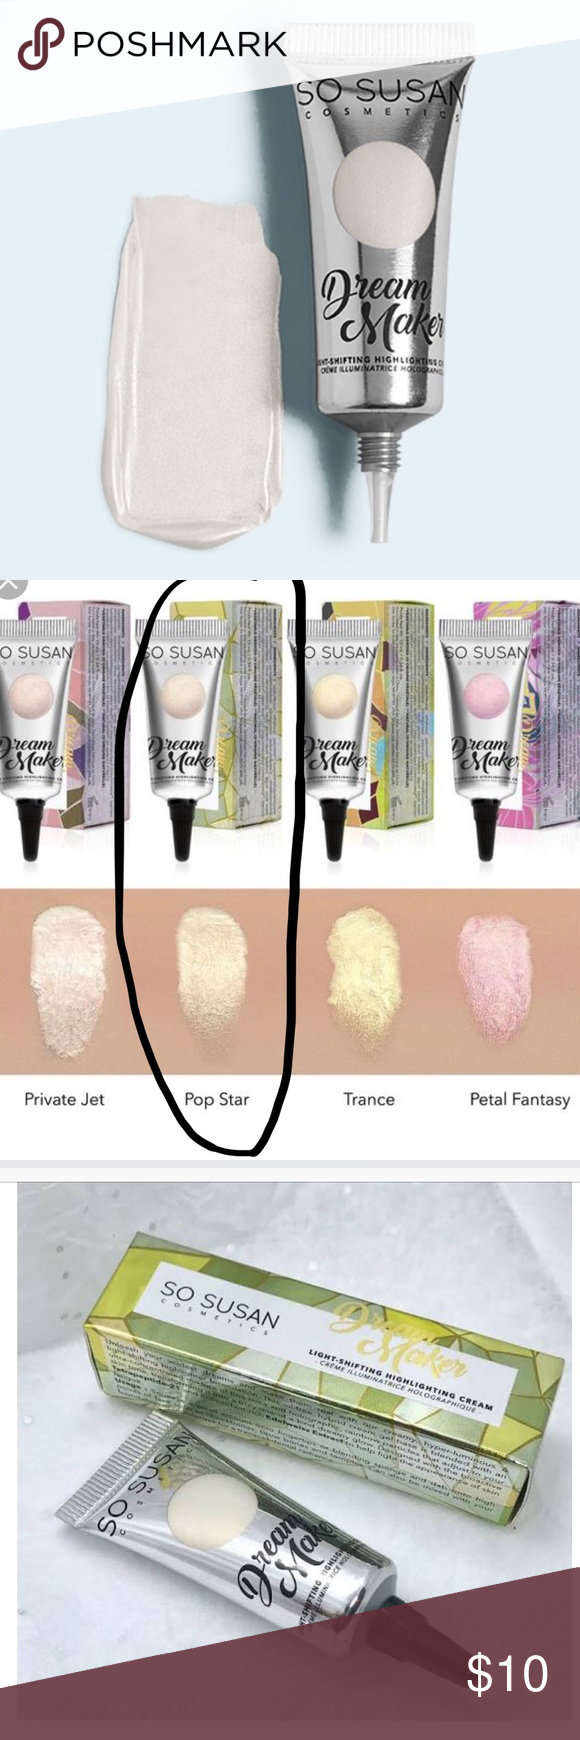 So Susan Cosmetics Dream Maker In Shade Popstar Cosmetics Things To Sell Shades